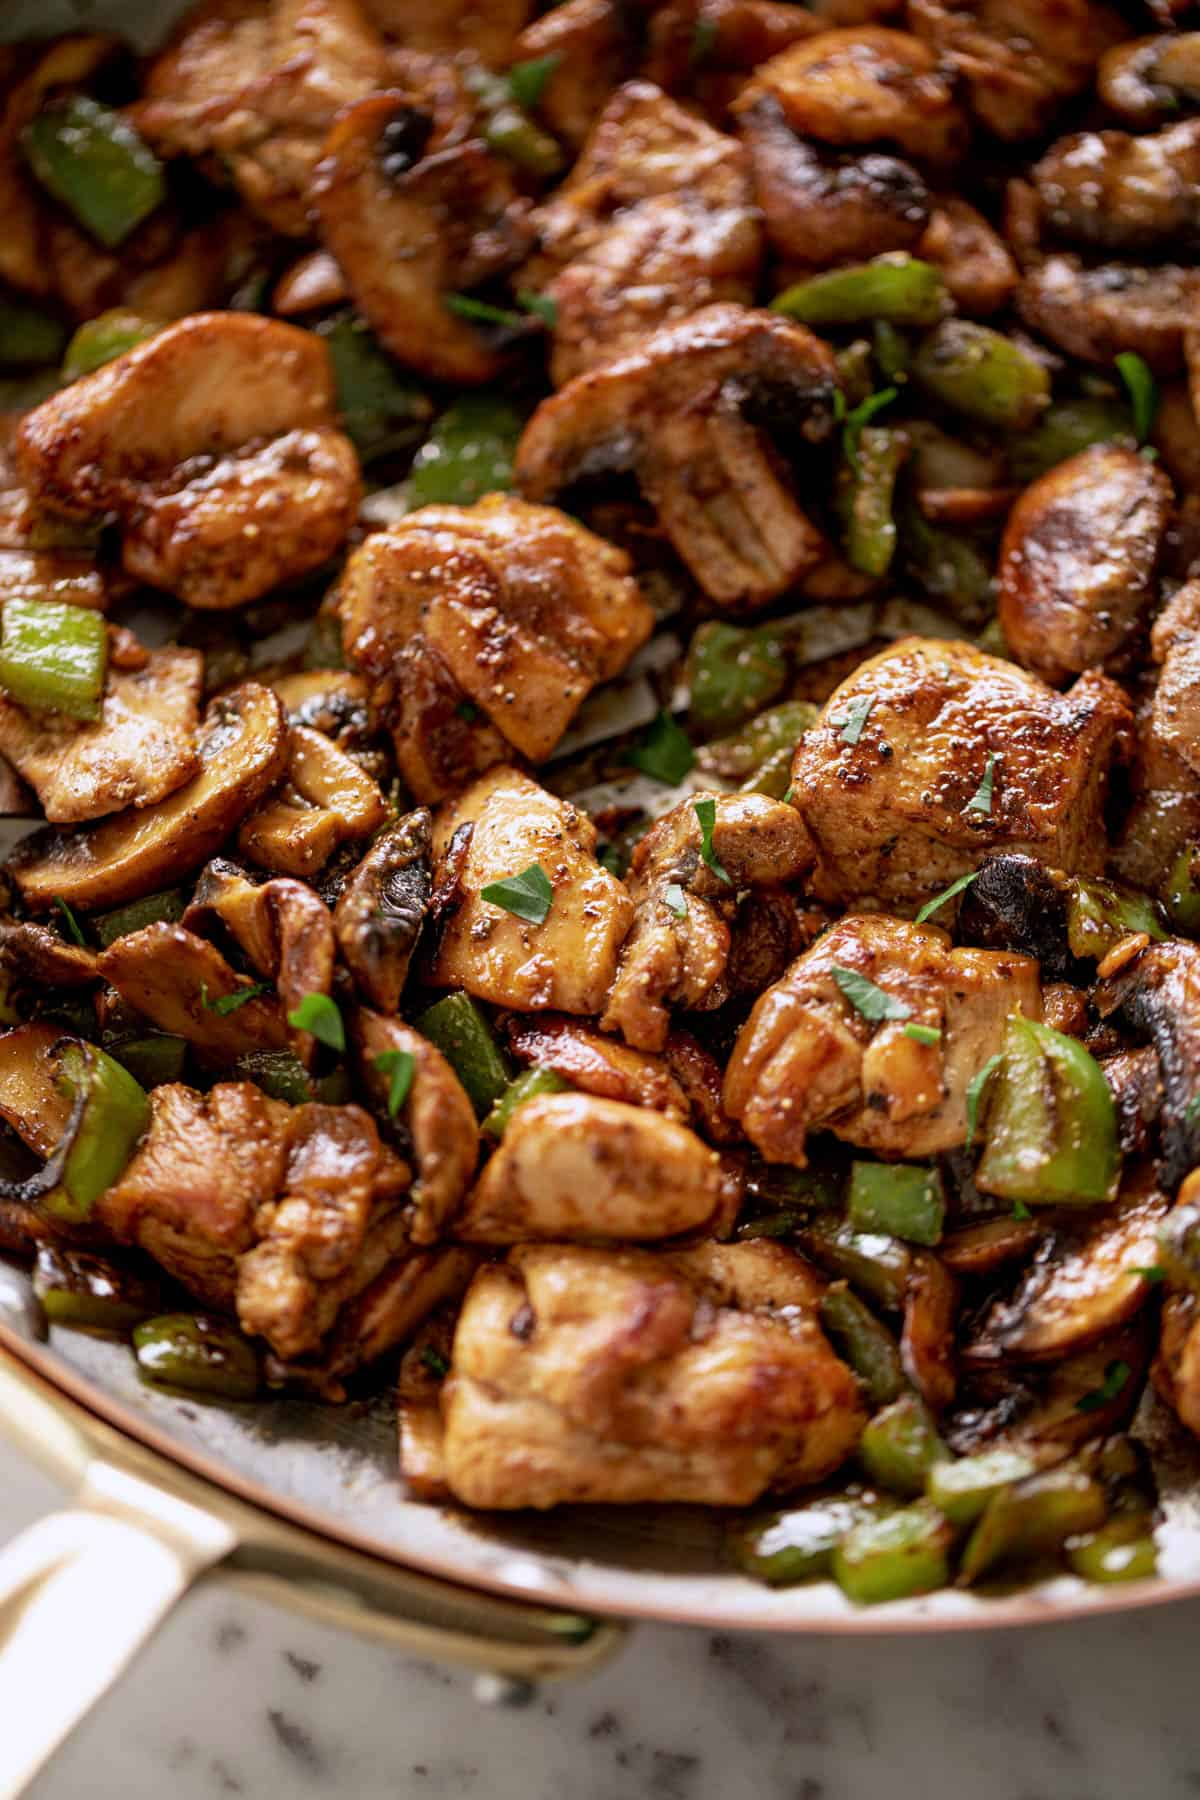 Garlic Mushroom Chicken Bites cook in no time at all! An easy dinner recipe cooked in a silver pan or skillet with a wooden spoon. | cafedelites.com